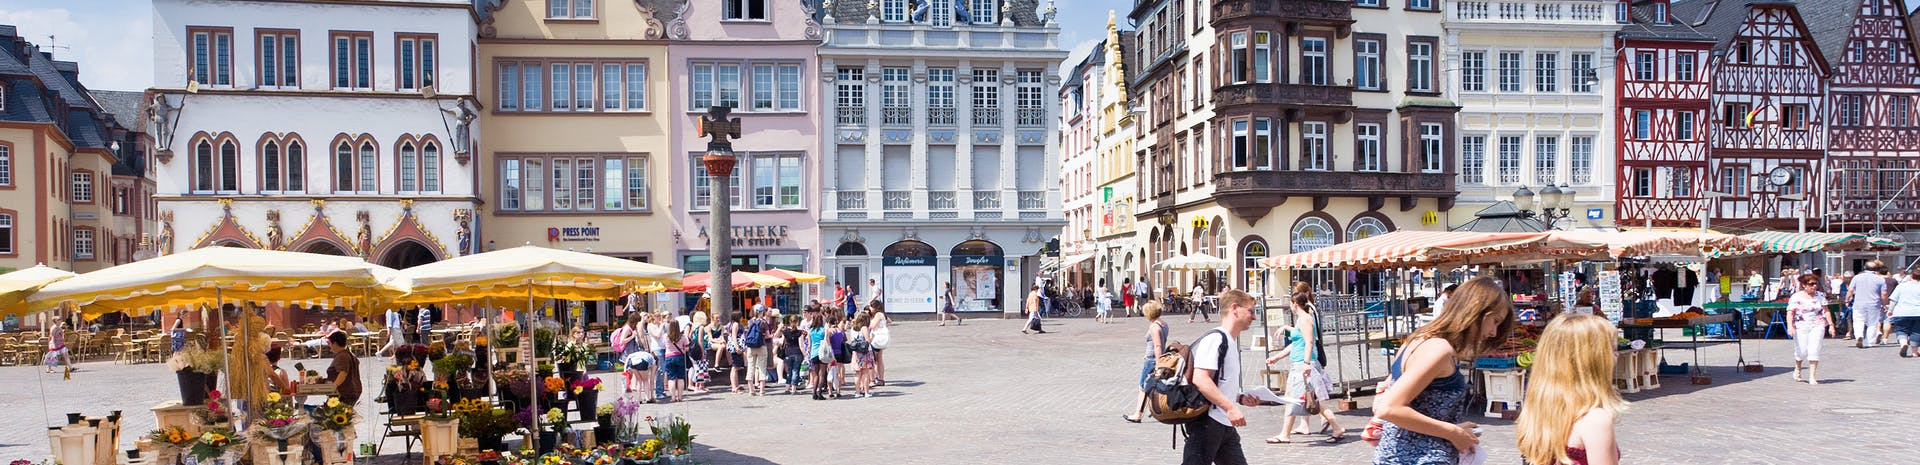 Picture of Trier